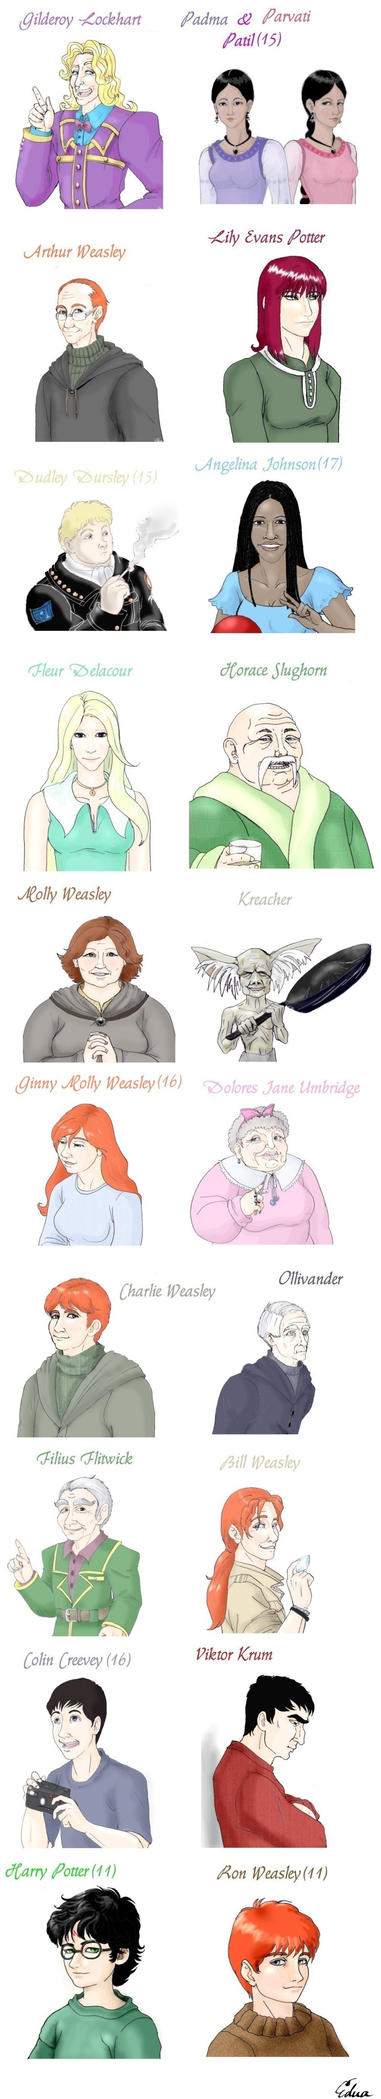 HP portraits-2. by Aedua